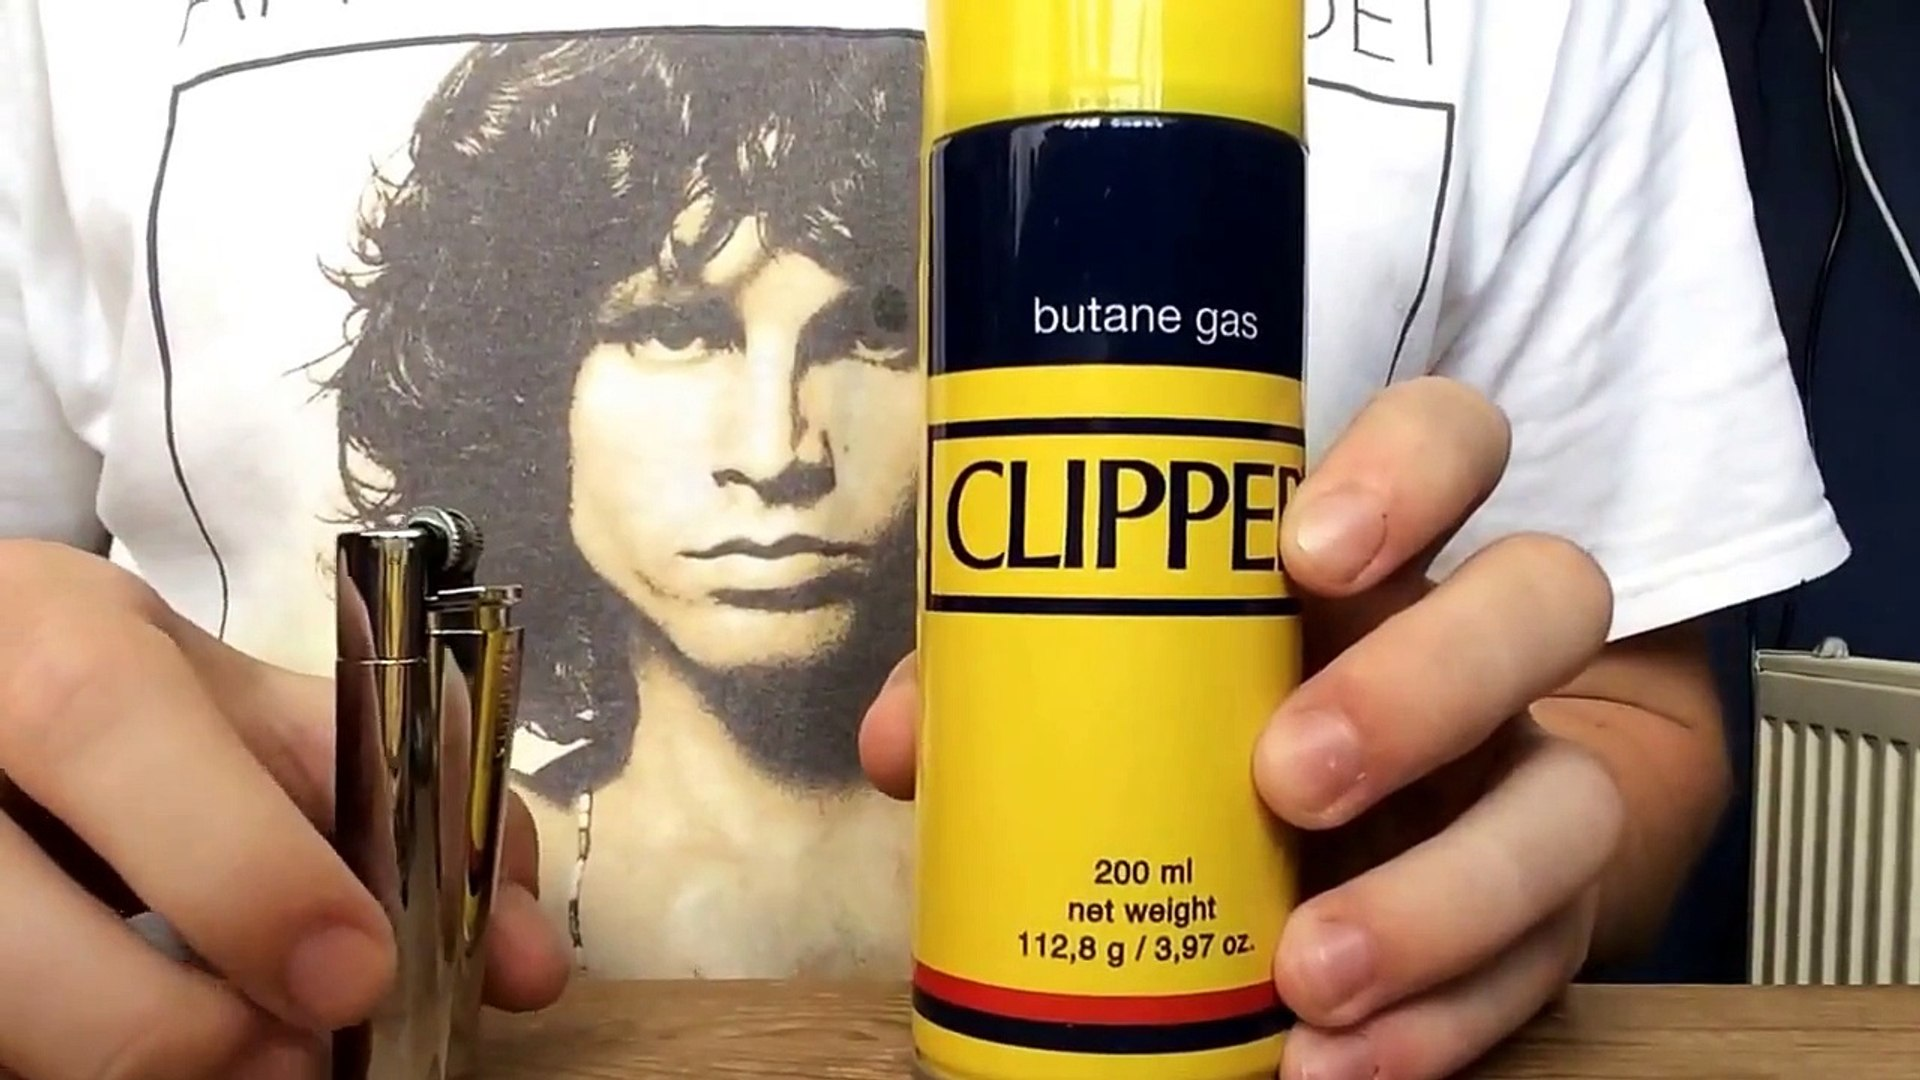 How to: Refill a clipper lighter